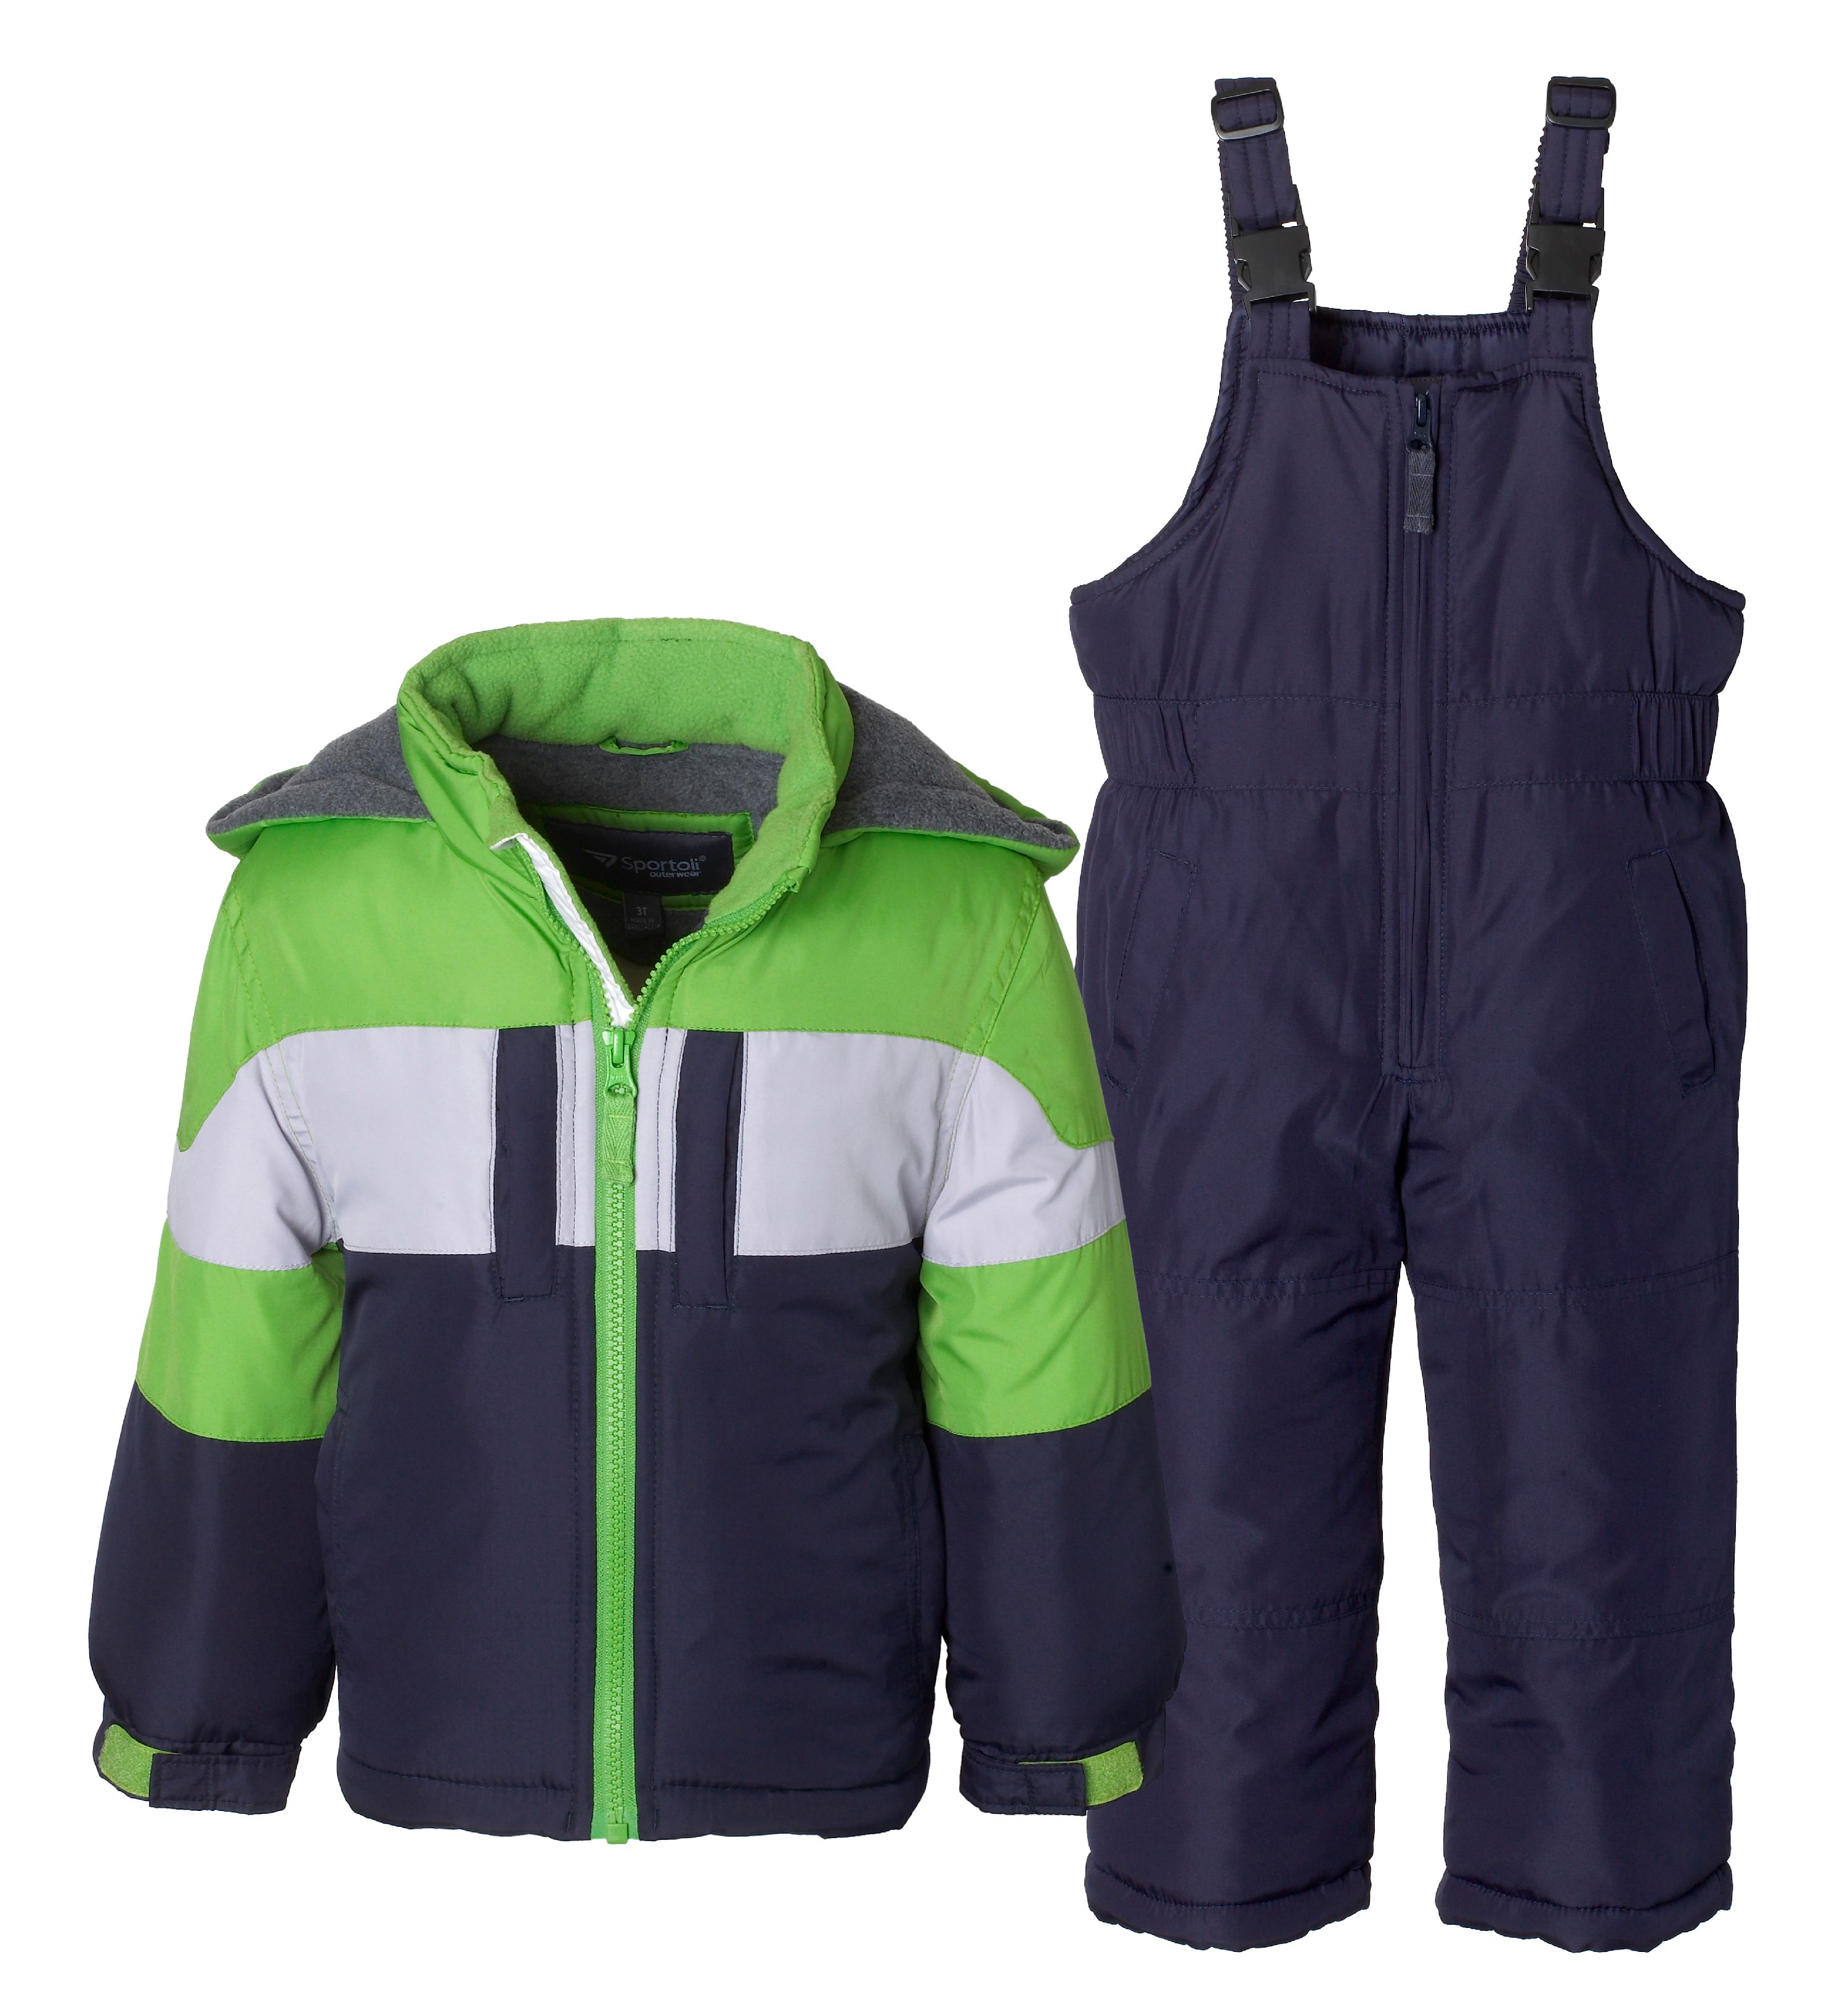 Sportoli Boys Kids Winter Snowboard Skiing Parka Jacket &...